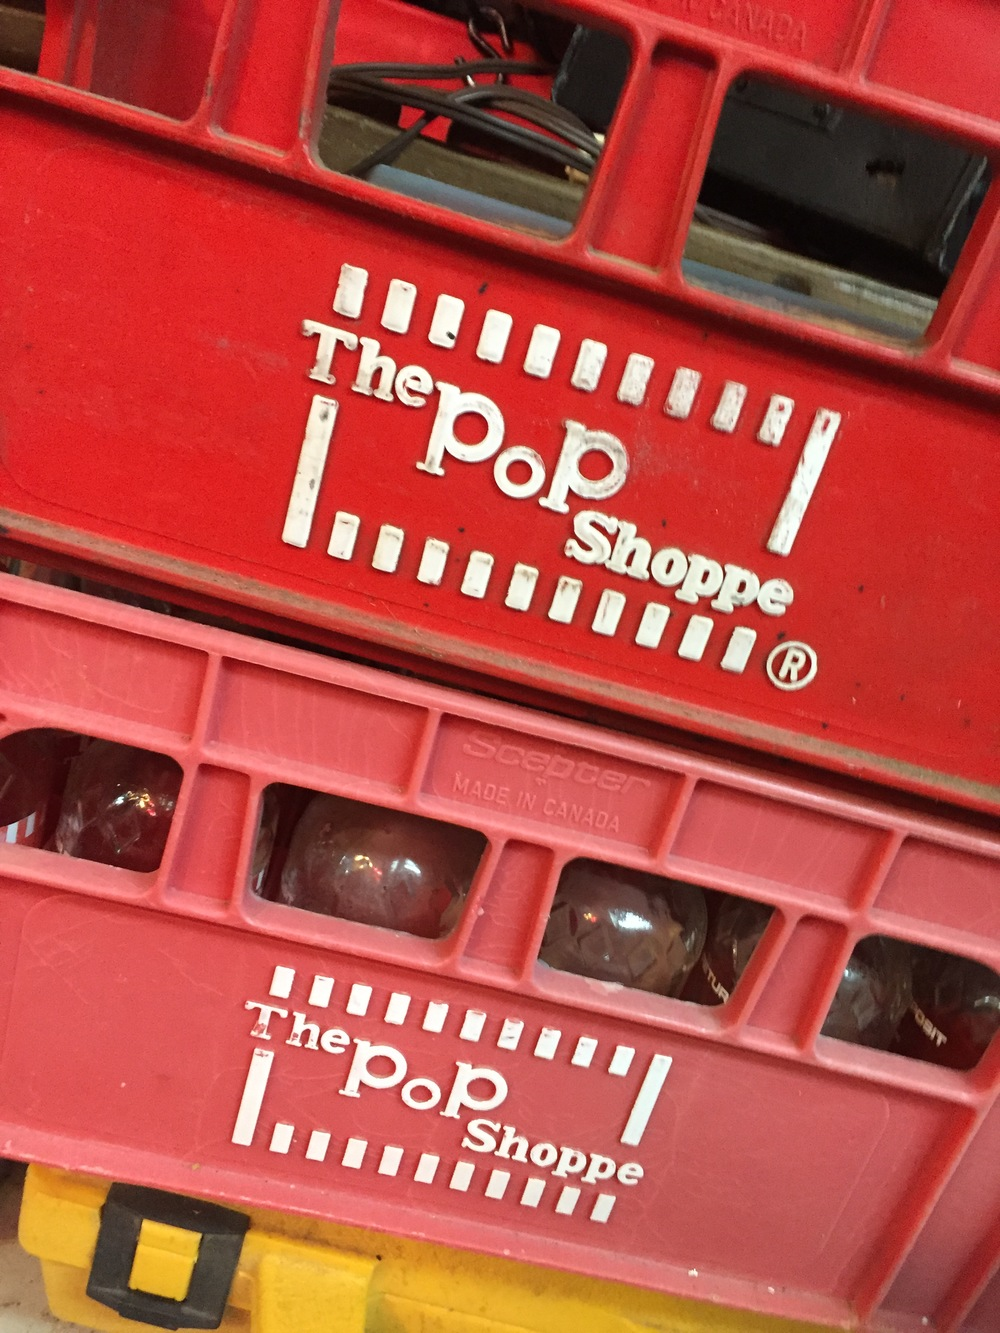 Vintage Pop Shoppe Crates.JPG